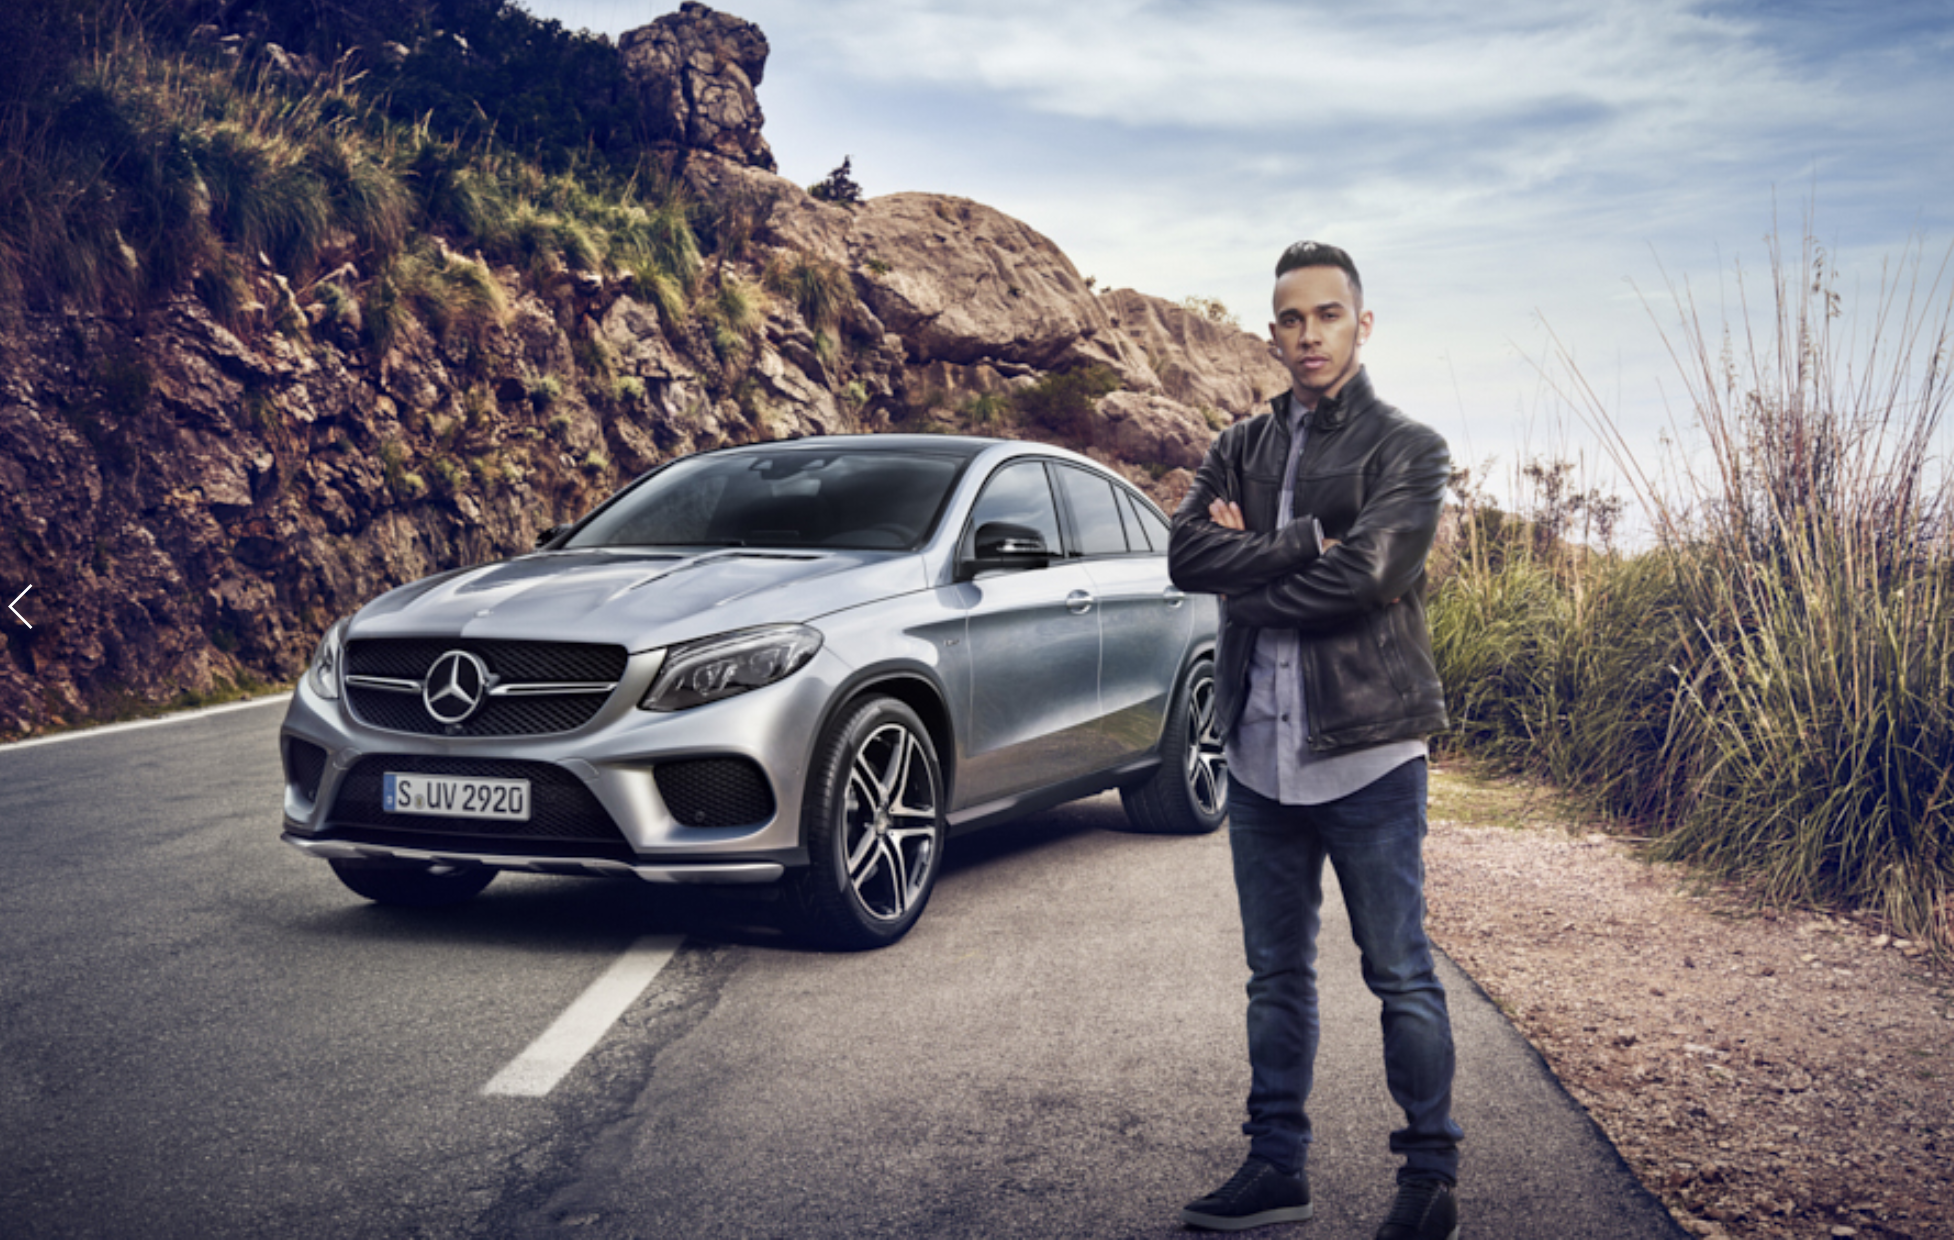 "THE CAMPAIGN - It's all about showing you that the Mercedes SUV range is ""At home in every terrain"". For the campaign, we took five celebrity ambassadors: Formula 1 champion Lewis Hamilton, adventurer Mike Horn, pro surfer Garrett McNamara, show jumper Meredith Michaels-Beerbaum, and top model Petra Némcová."